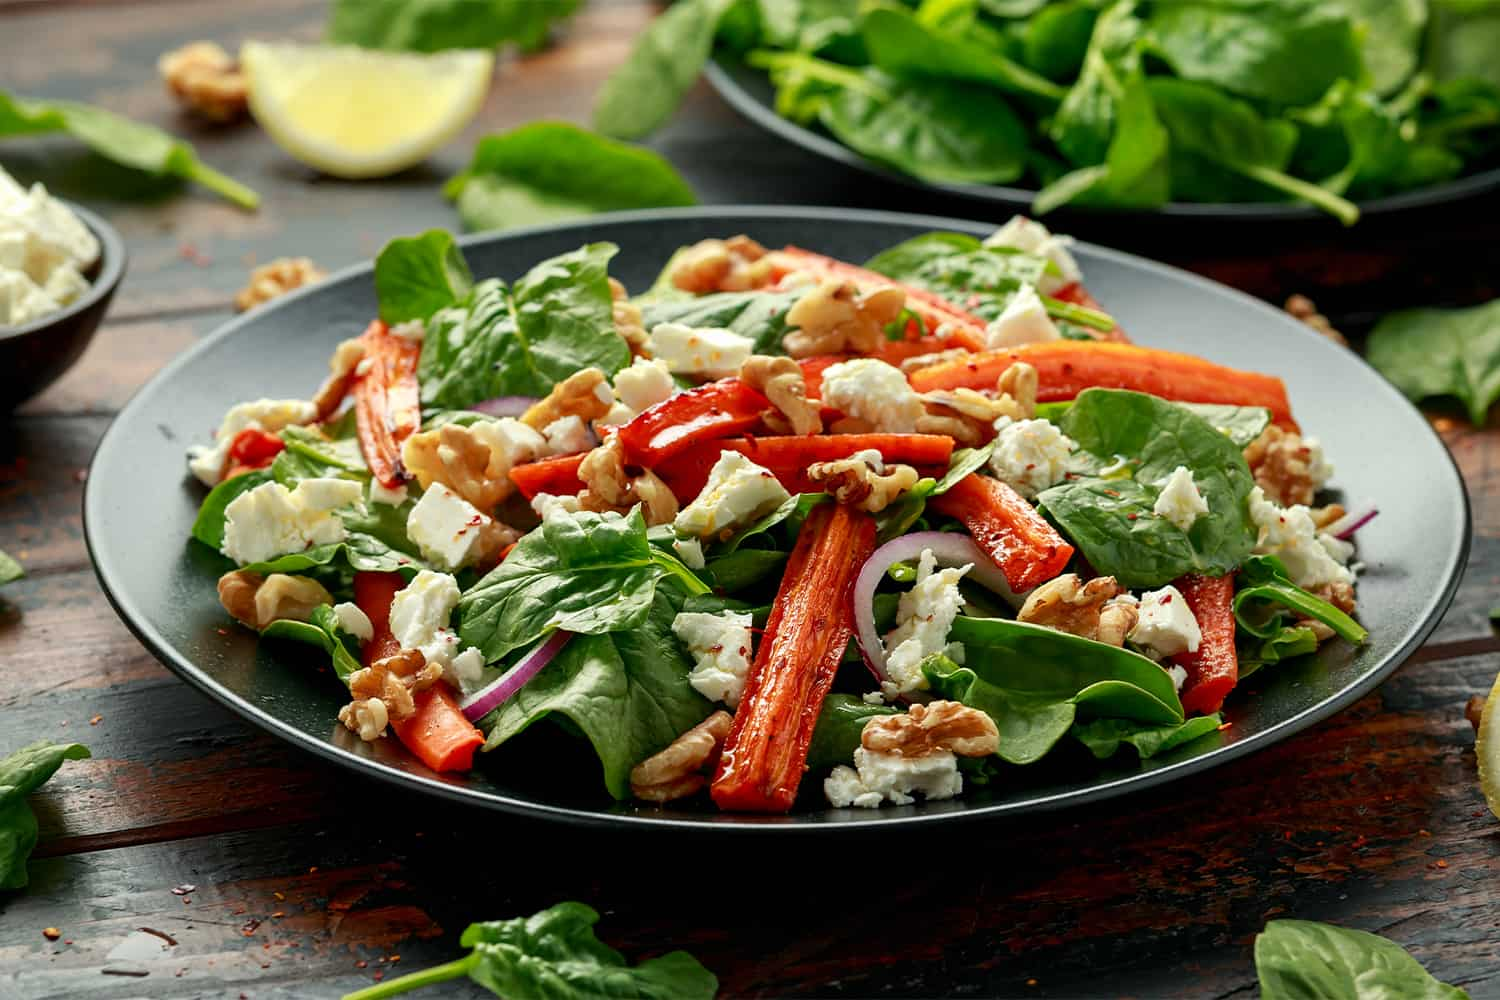 Roasted Carrot Salad with Spinach, Feta Cheese and Walnuts